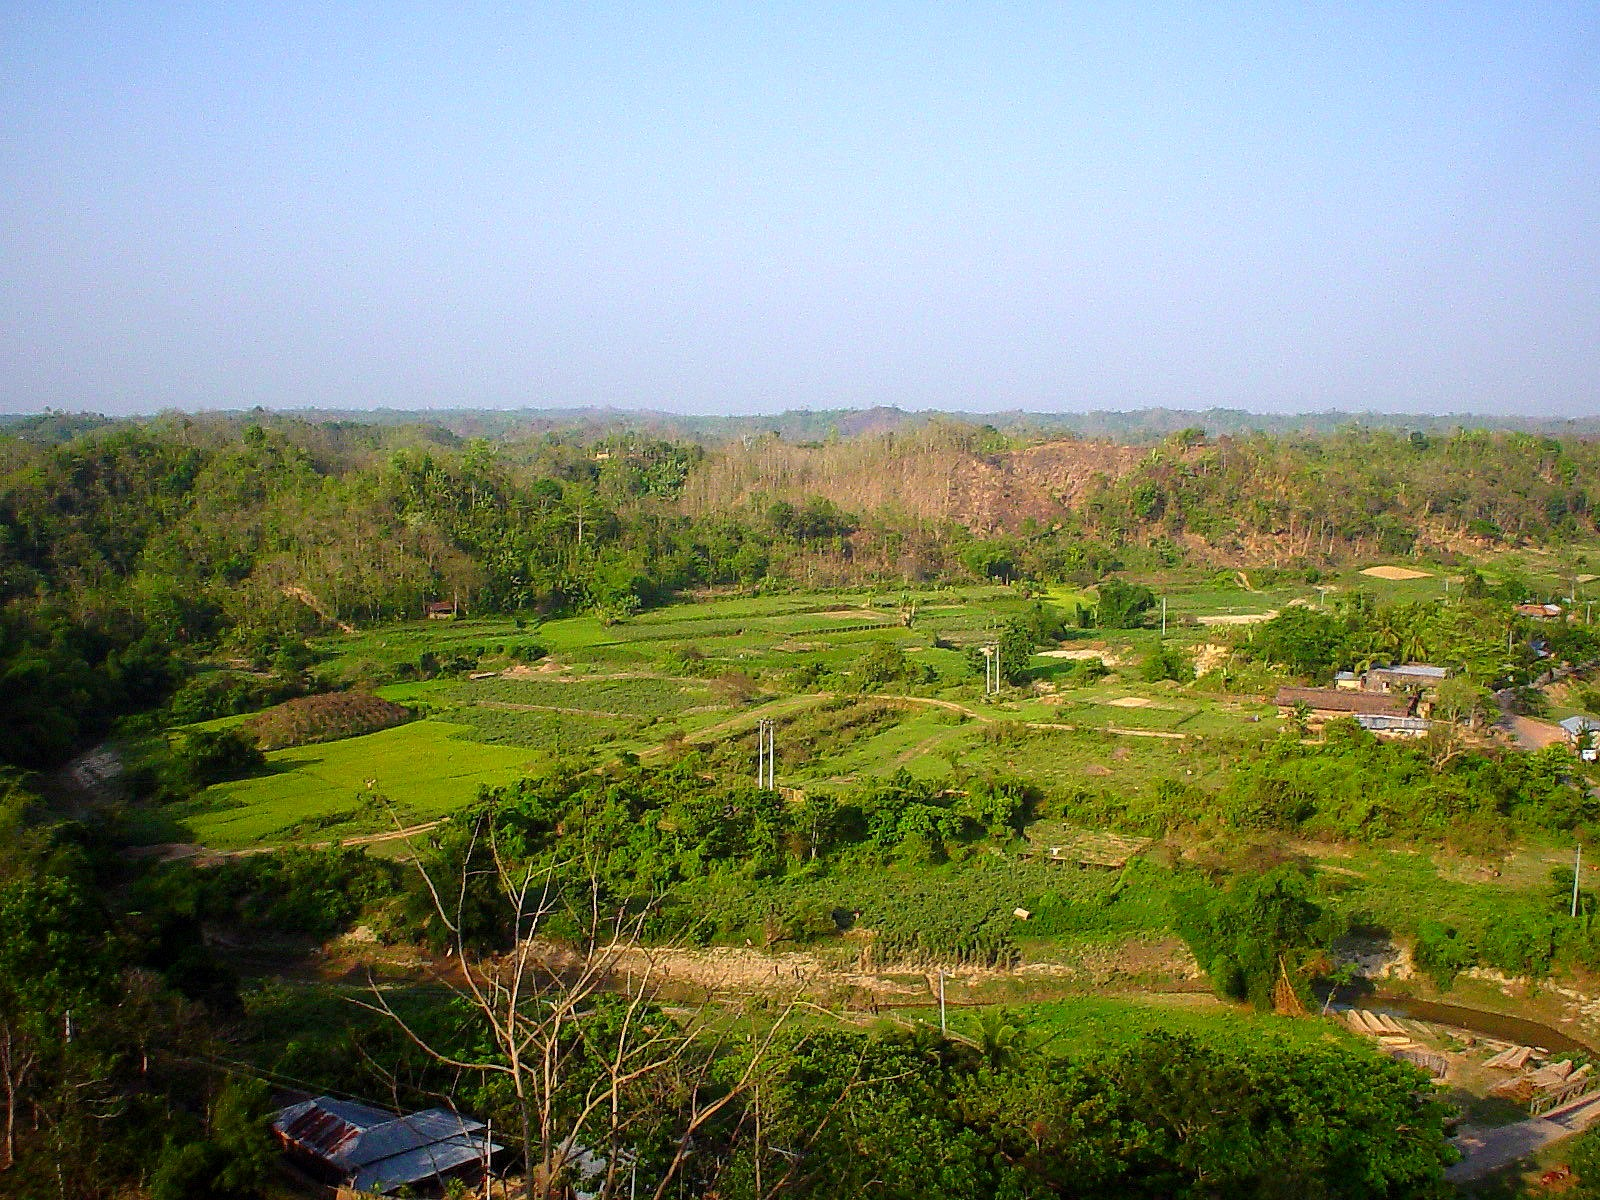 View of lush green Bandarban hills and valley